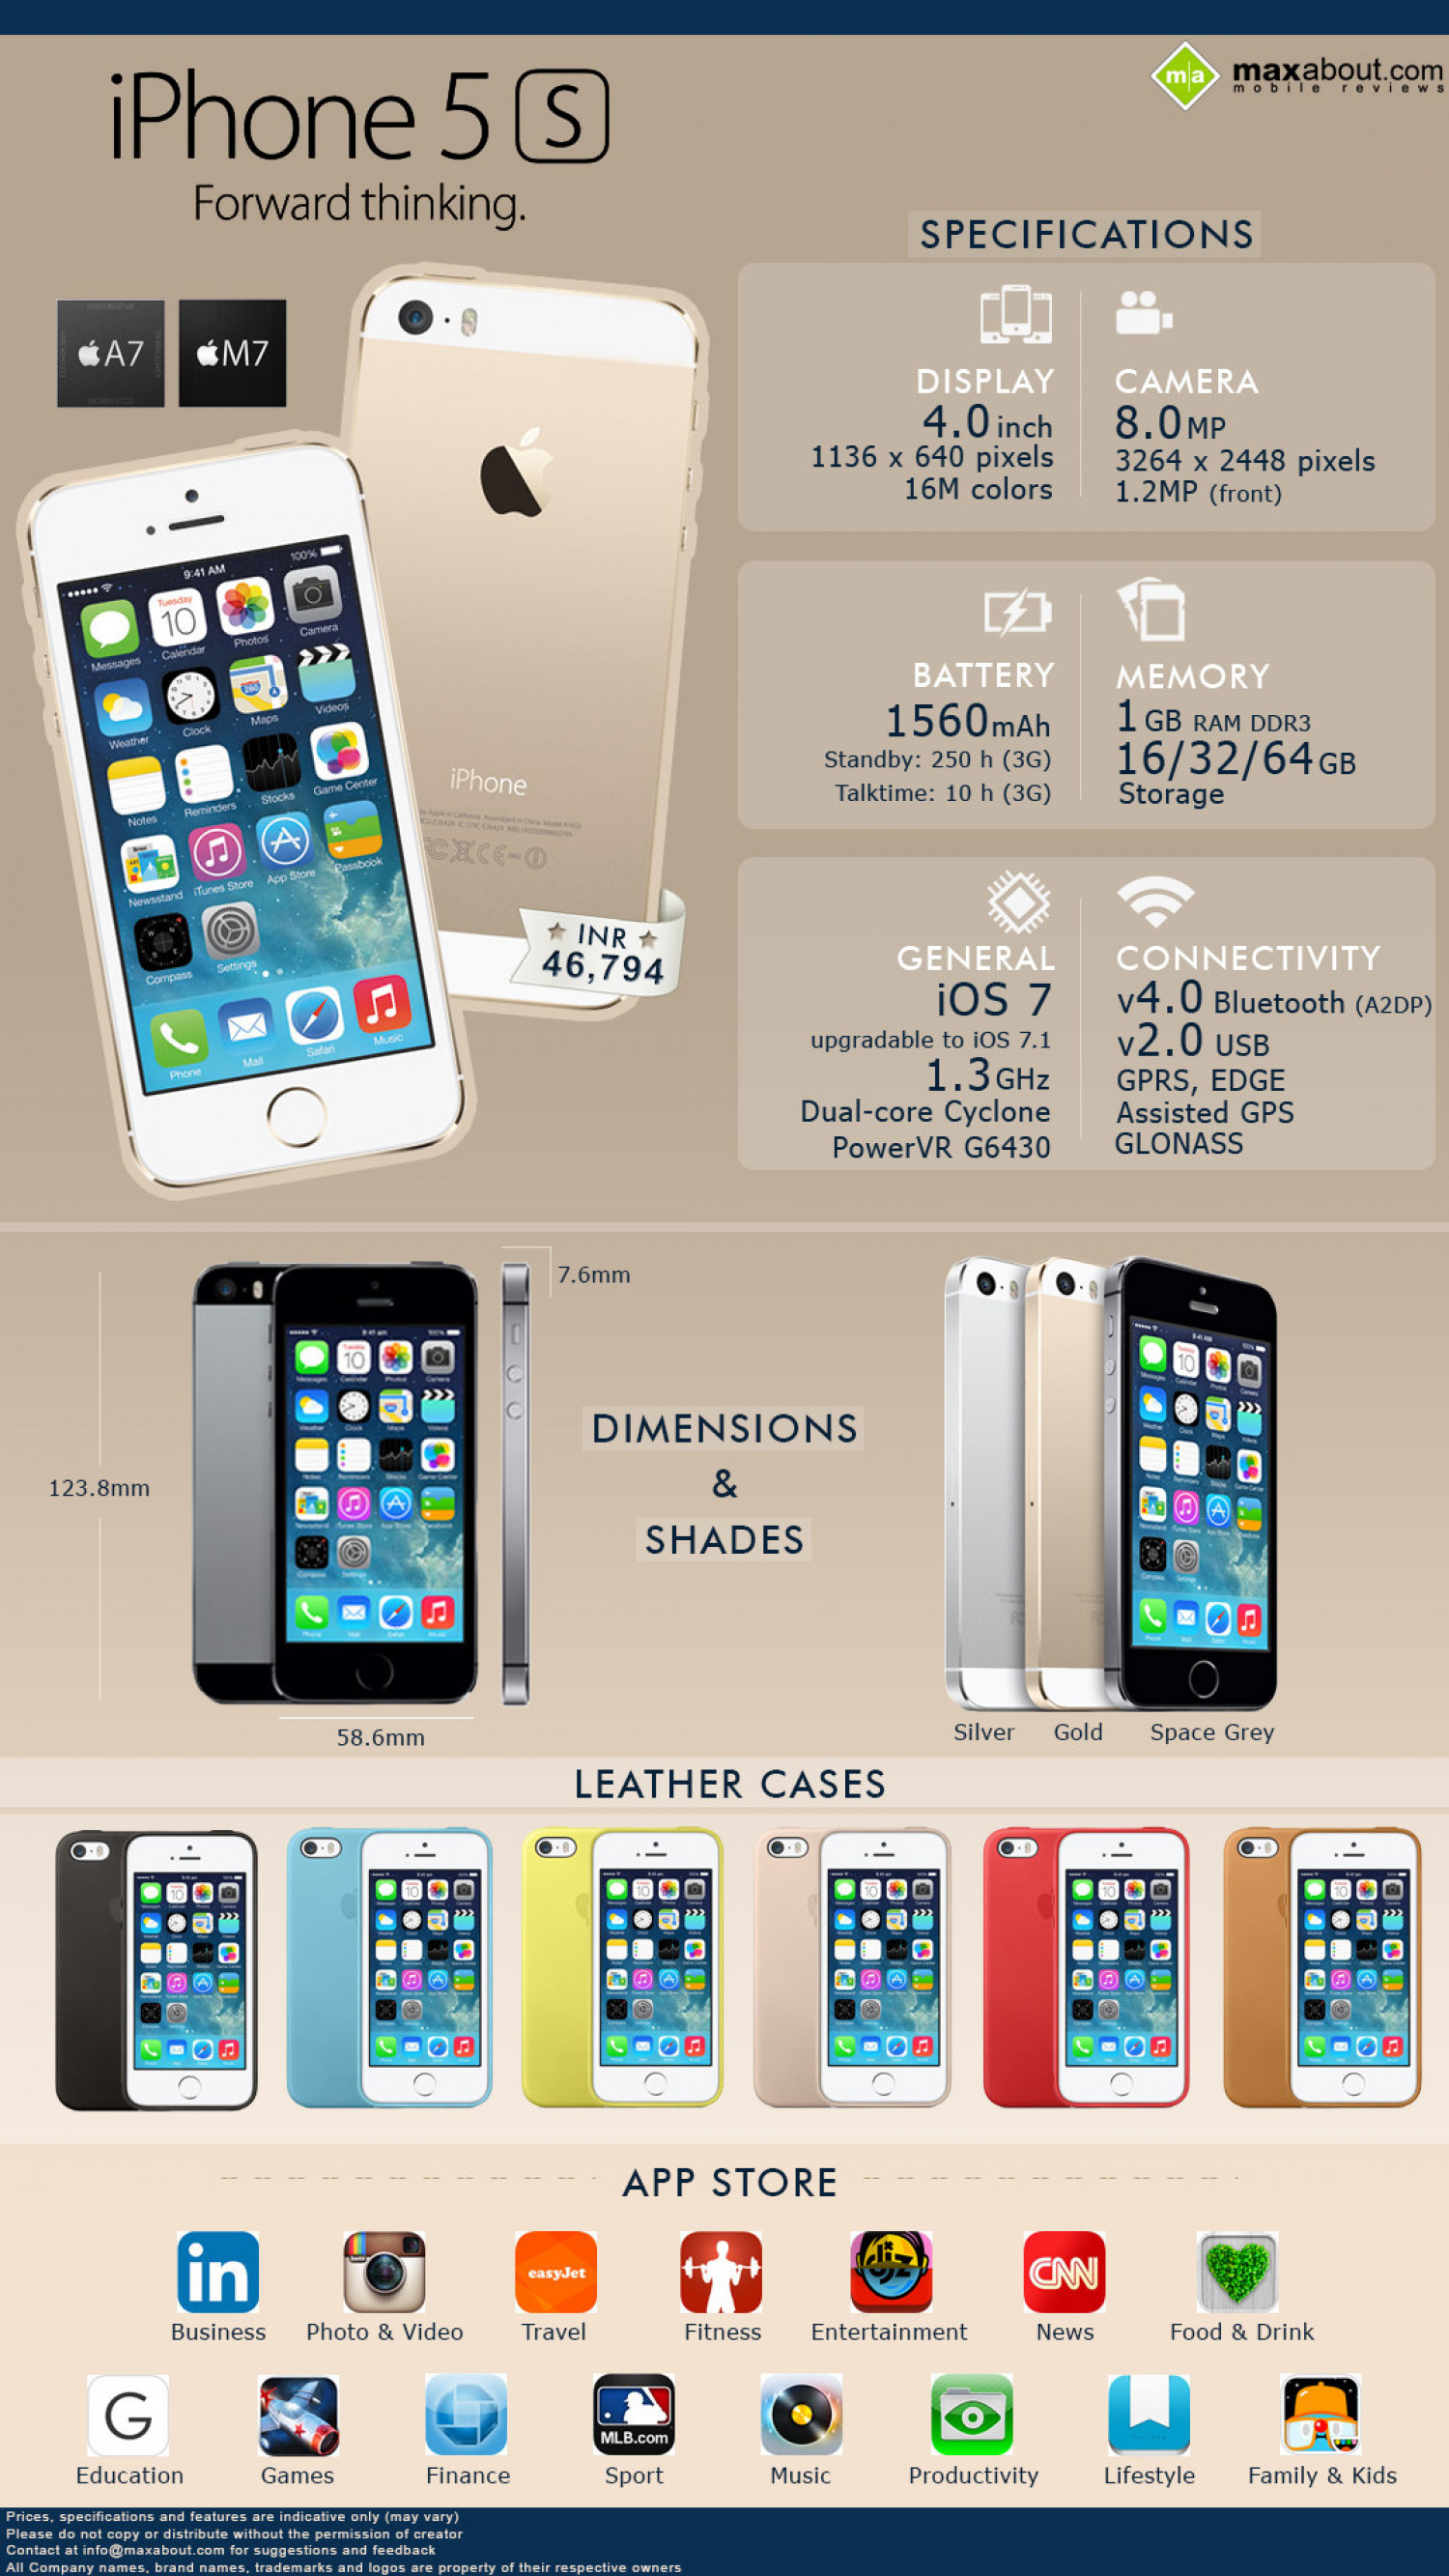 Apple iPhone 5S - Forward Thinking. Infographic